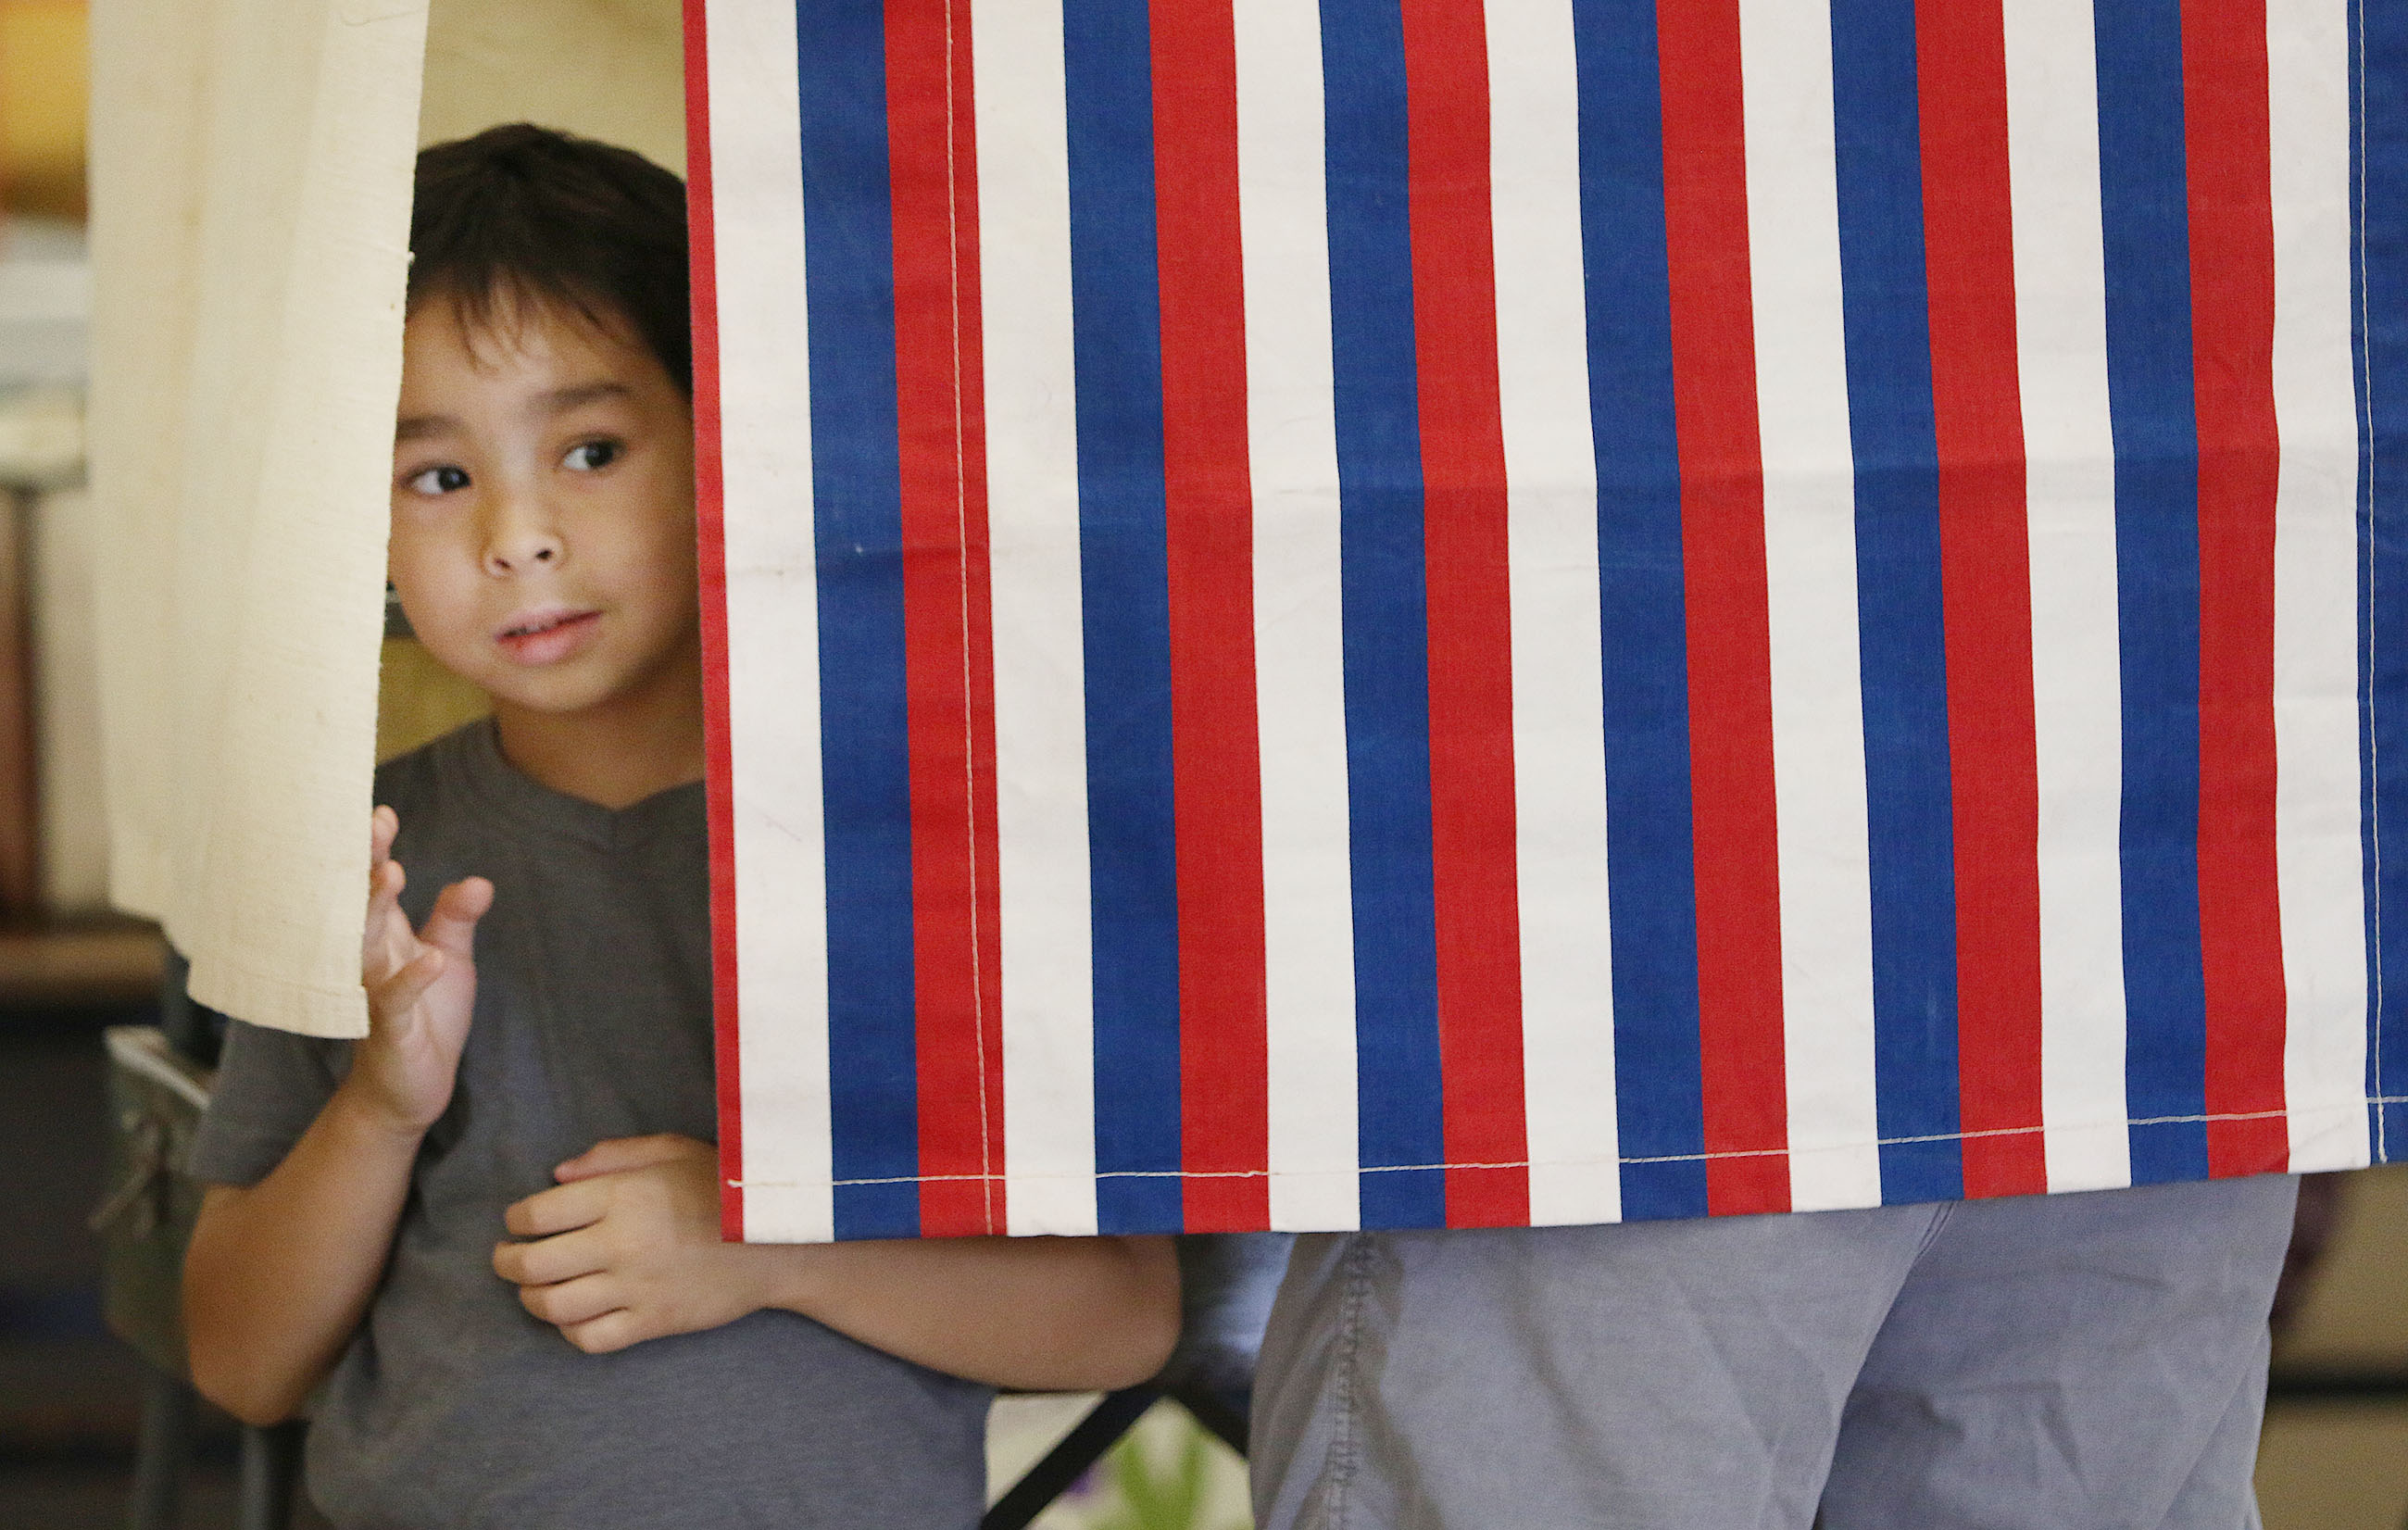 <p>Luke Herring, 5, checked out the inaction as his father, Kevin Herring, voted in the Central Middle School cafeteria. (Cory Lum/Civil Beat)</p>